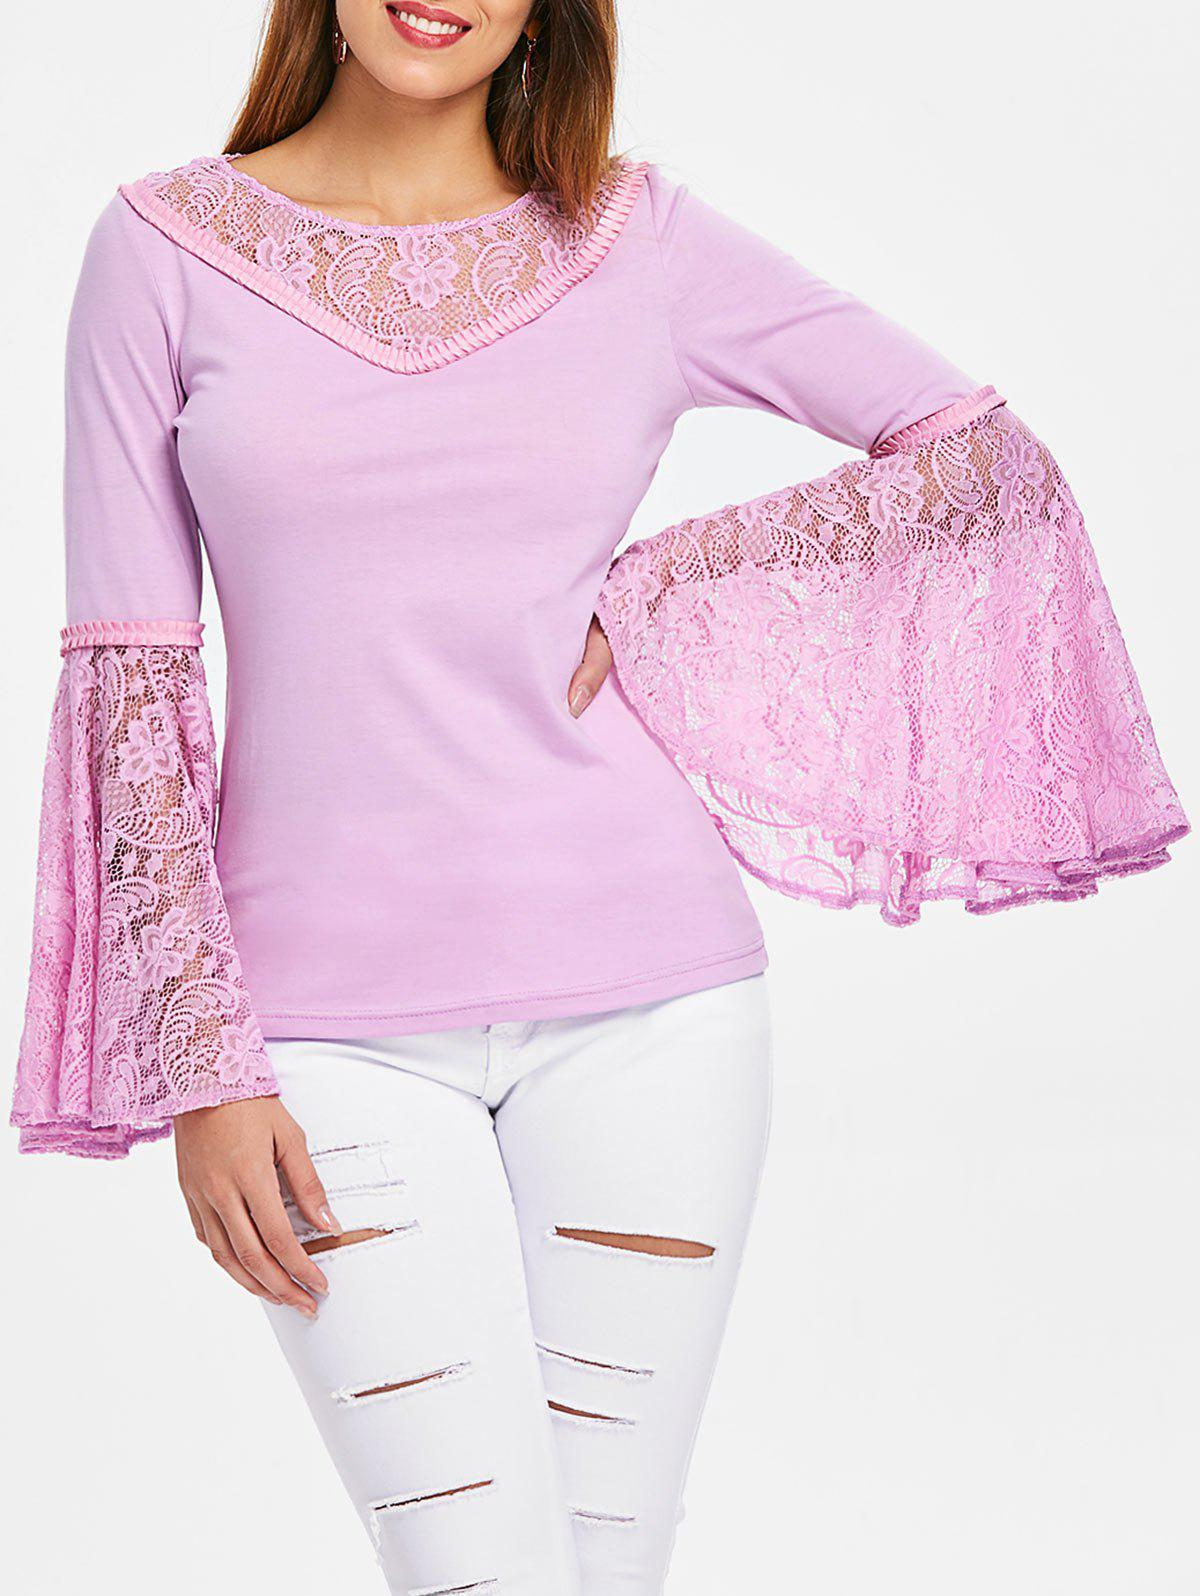 Hot Bell Sleeve Floral Lace T-shirt